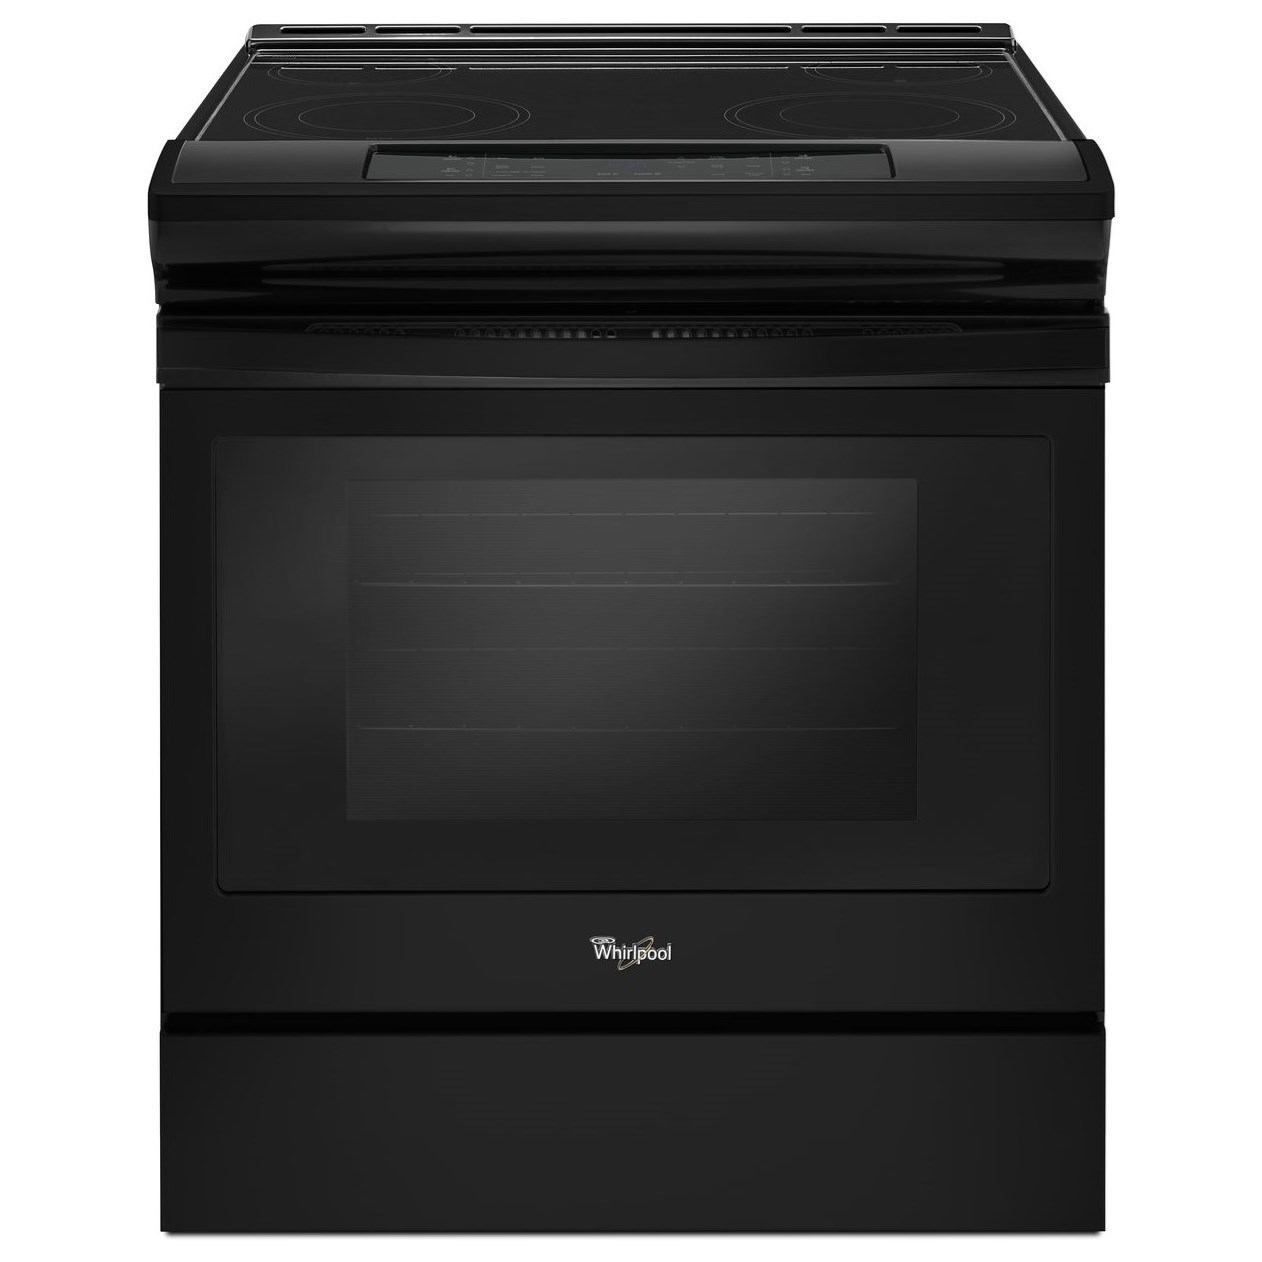 Electric Ranges 4.8 cu. ft. Electric Front Control Range by Whirlpool at Westrich Furniture & Appliances